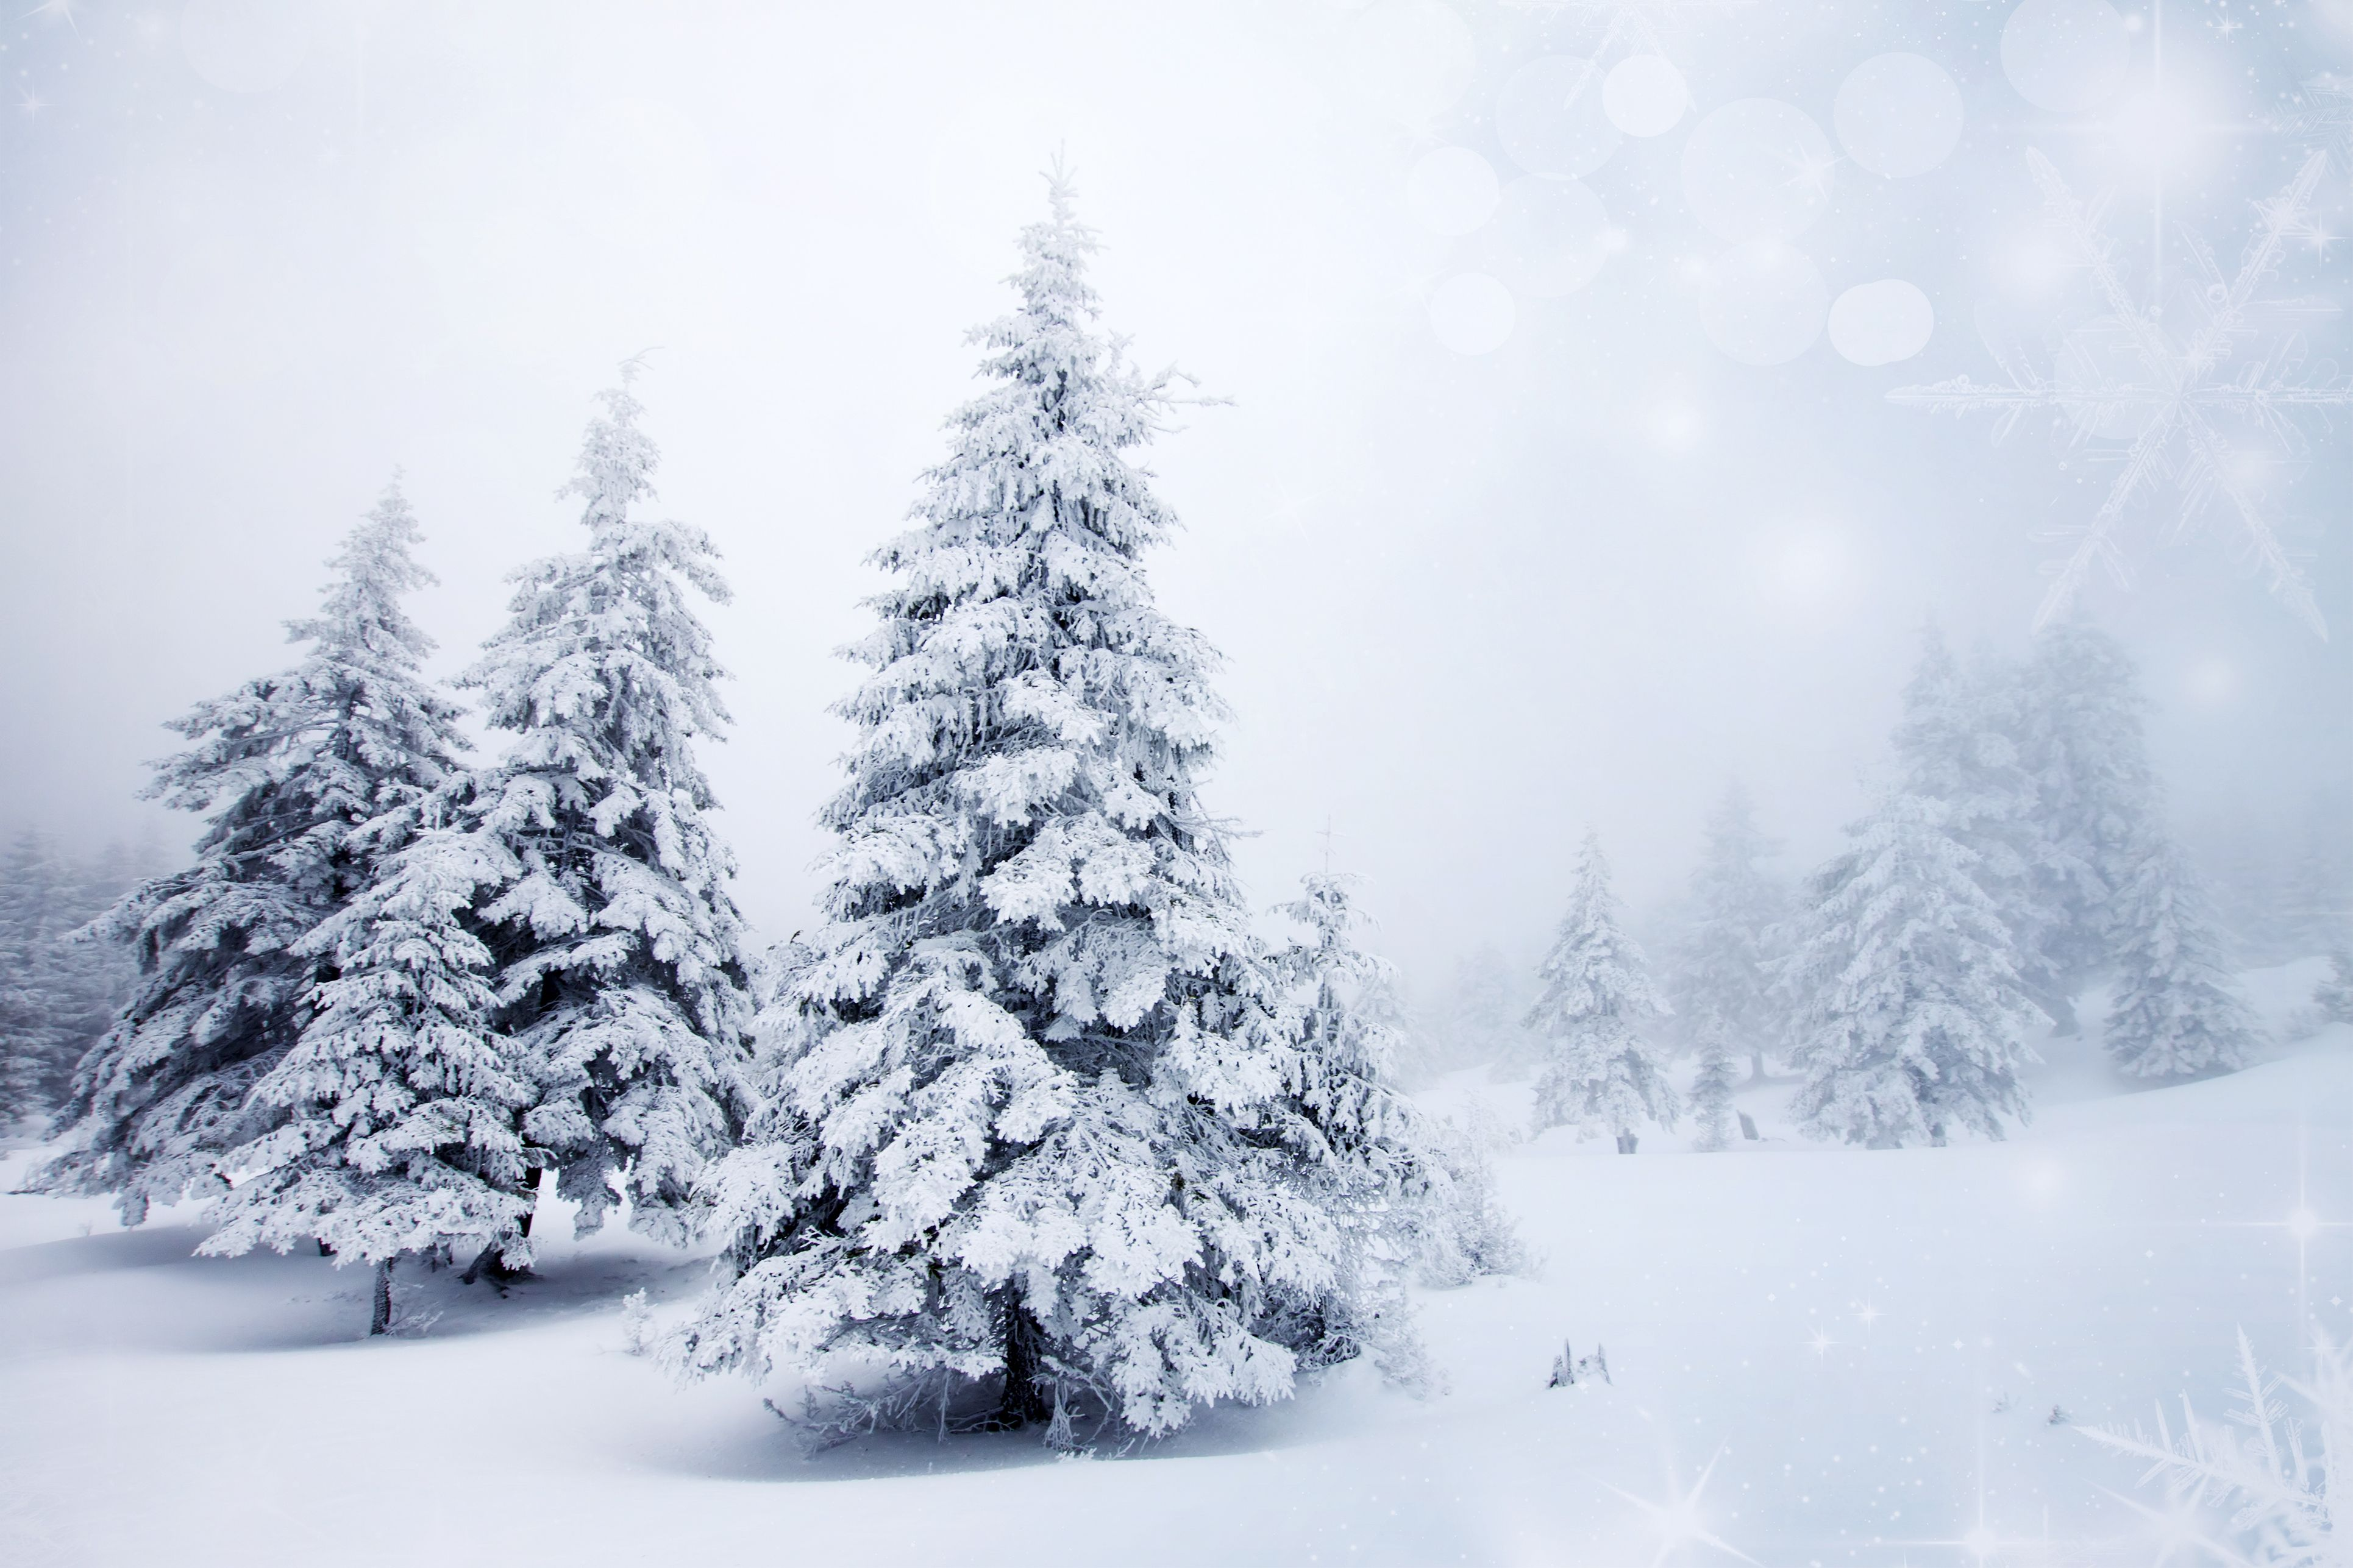 Pin By Leed S On Gifts For Him Winter Desktop Background Winter Wallpaper Nature Wallpaper